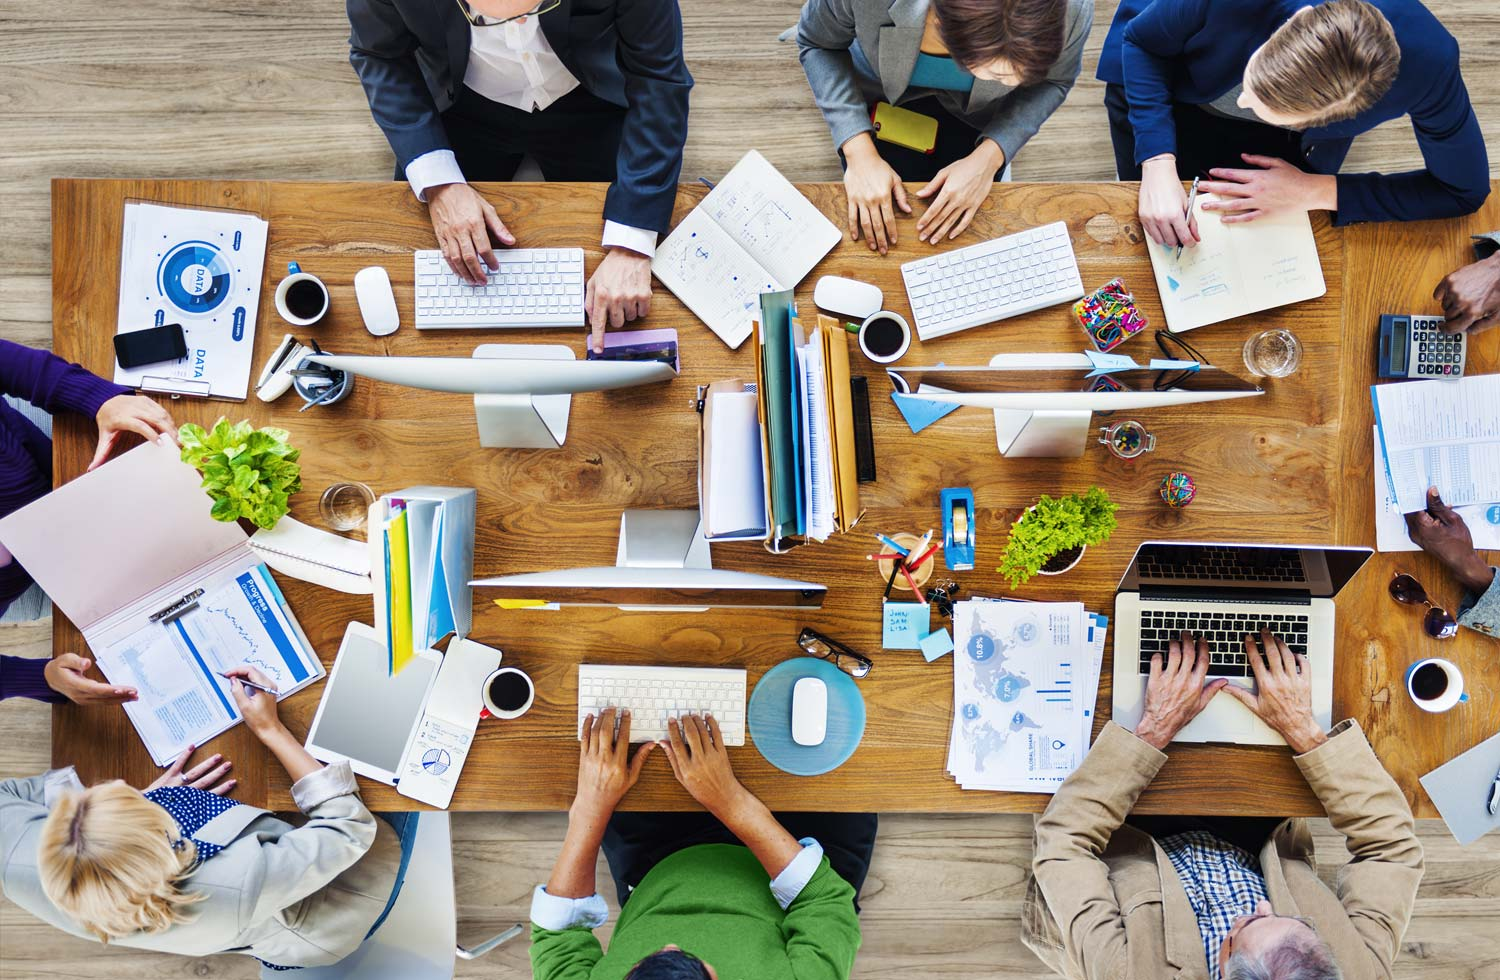 a study of workplace change The purpose of this study is to determine the causes of negativity and the effect it has on managers, individuals, and the workplace environment they tend to complain a lot, resist change and new ideas they are not motivated and can cause an unproductive environment.